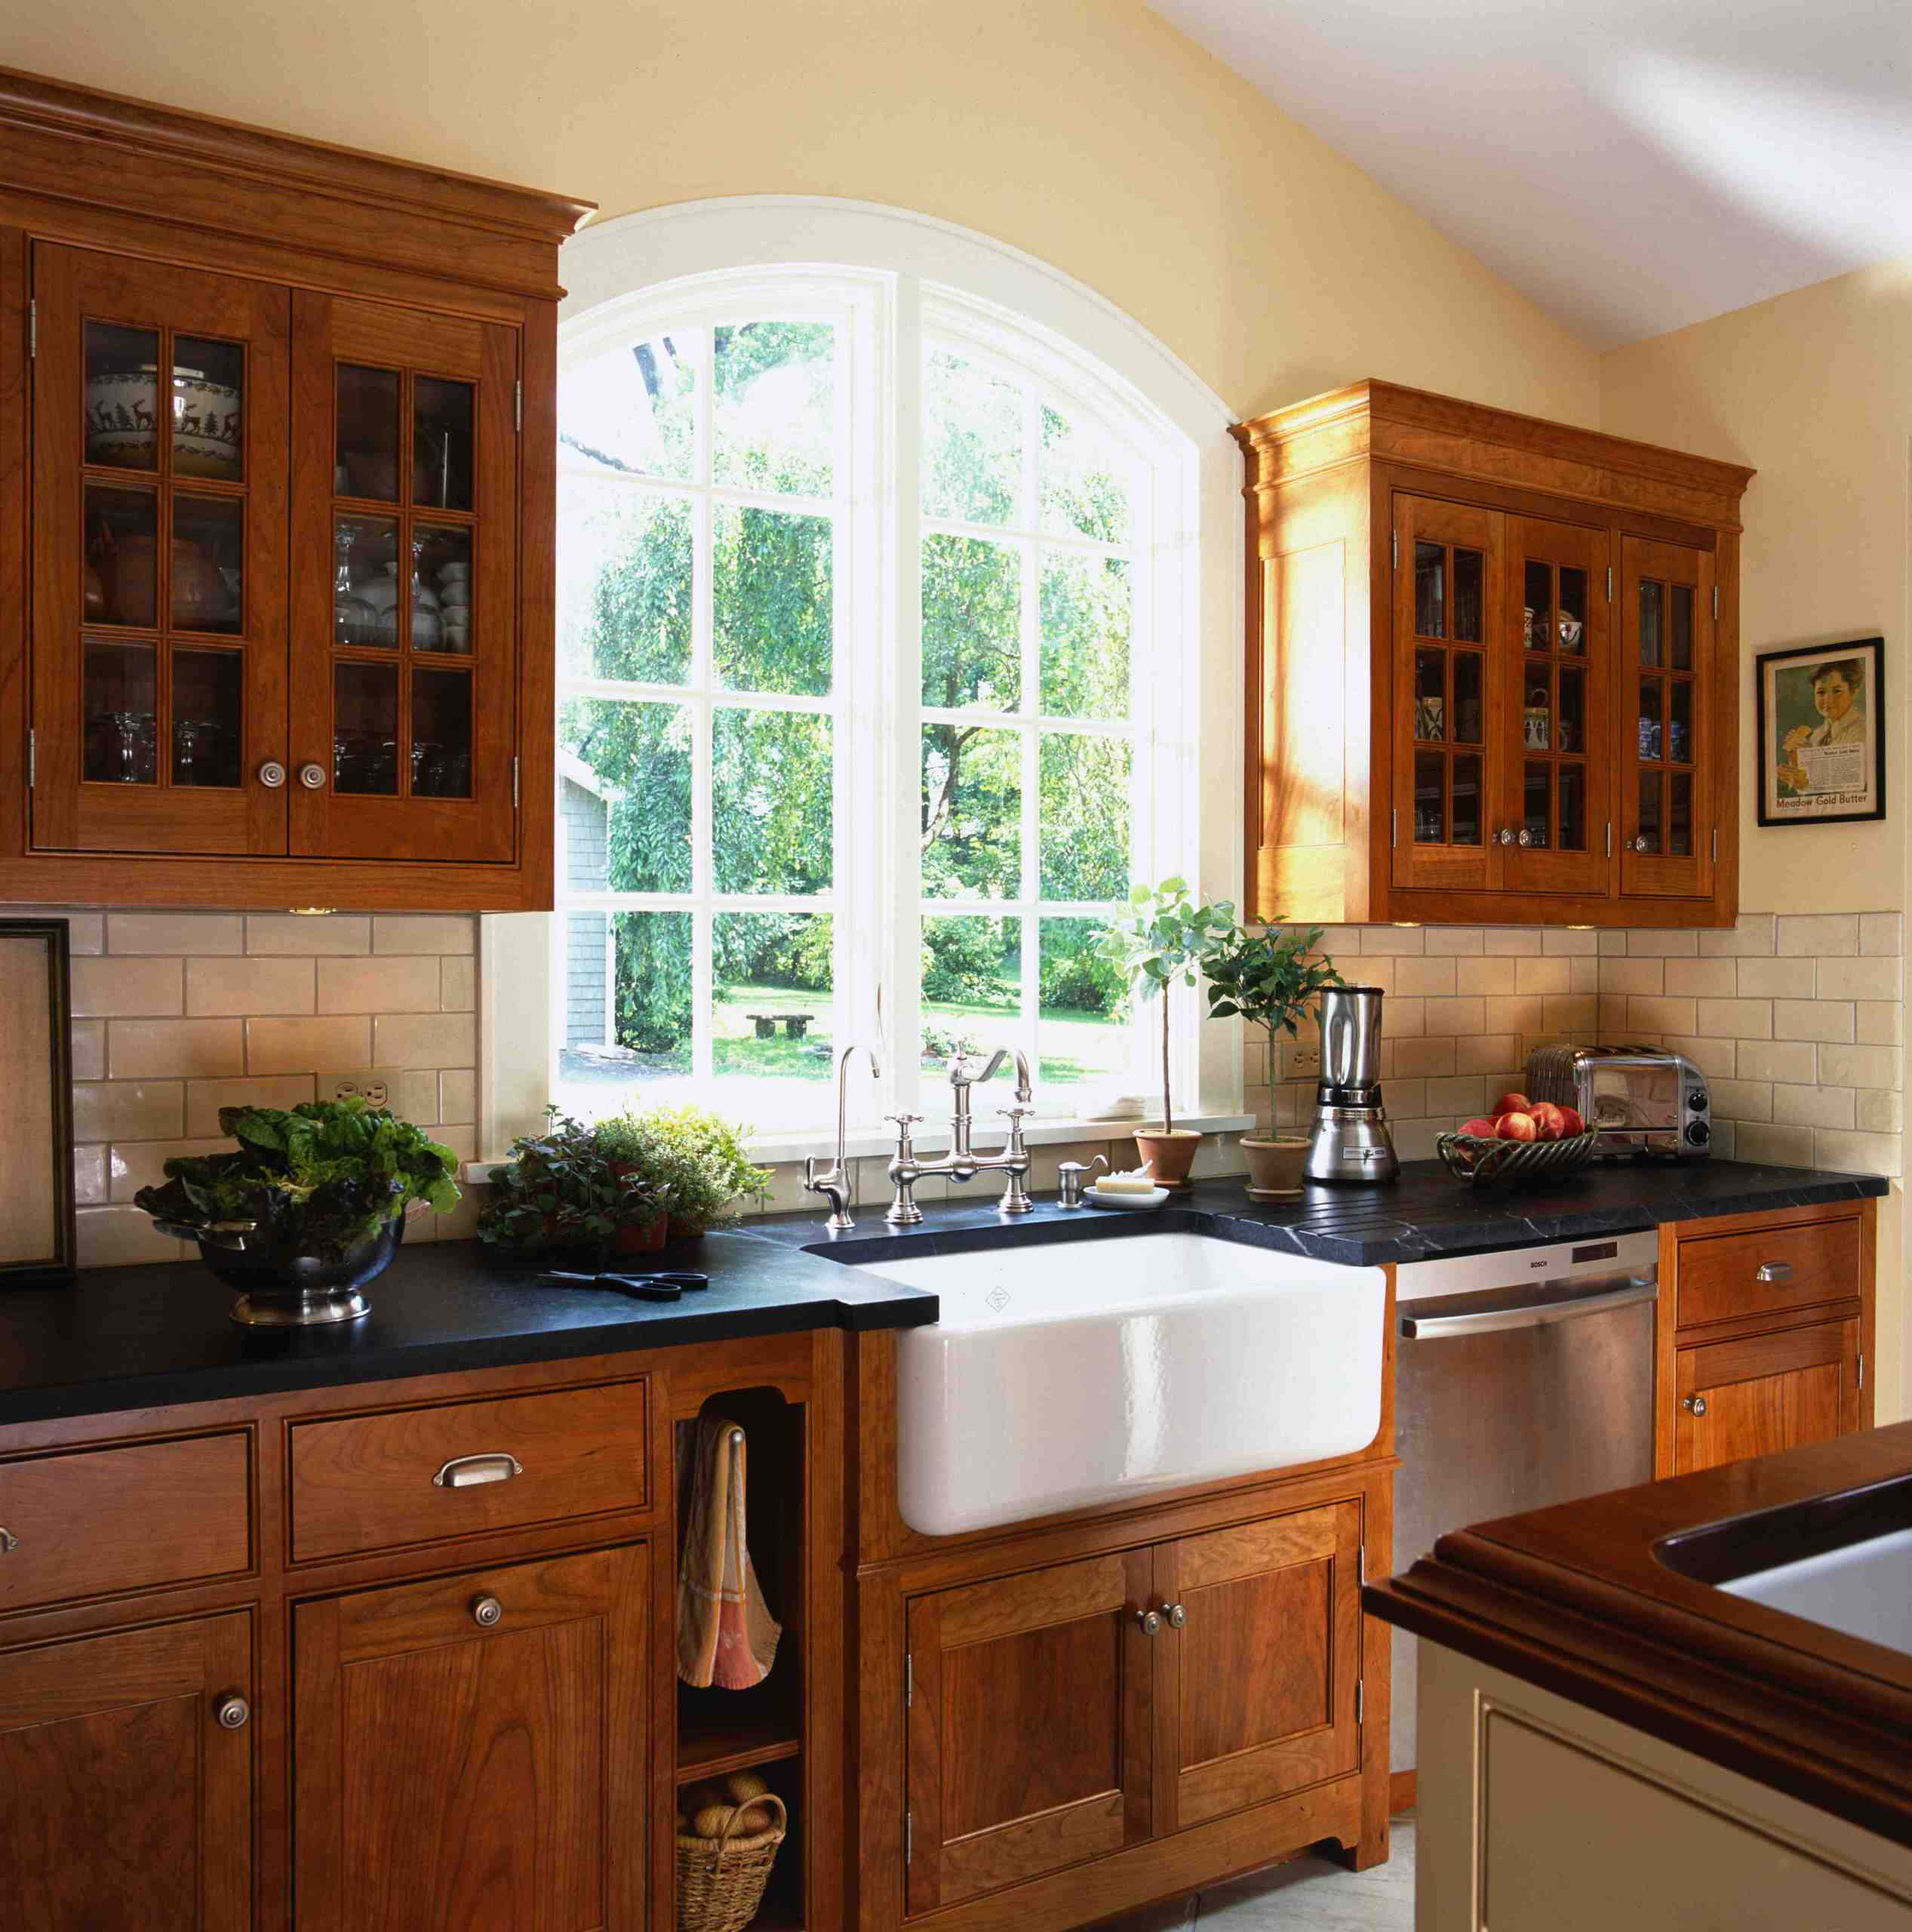 75 Beautiful Victorian Kitchen Pictures Ideas January 2021 Houzz